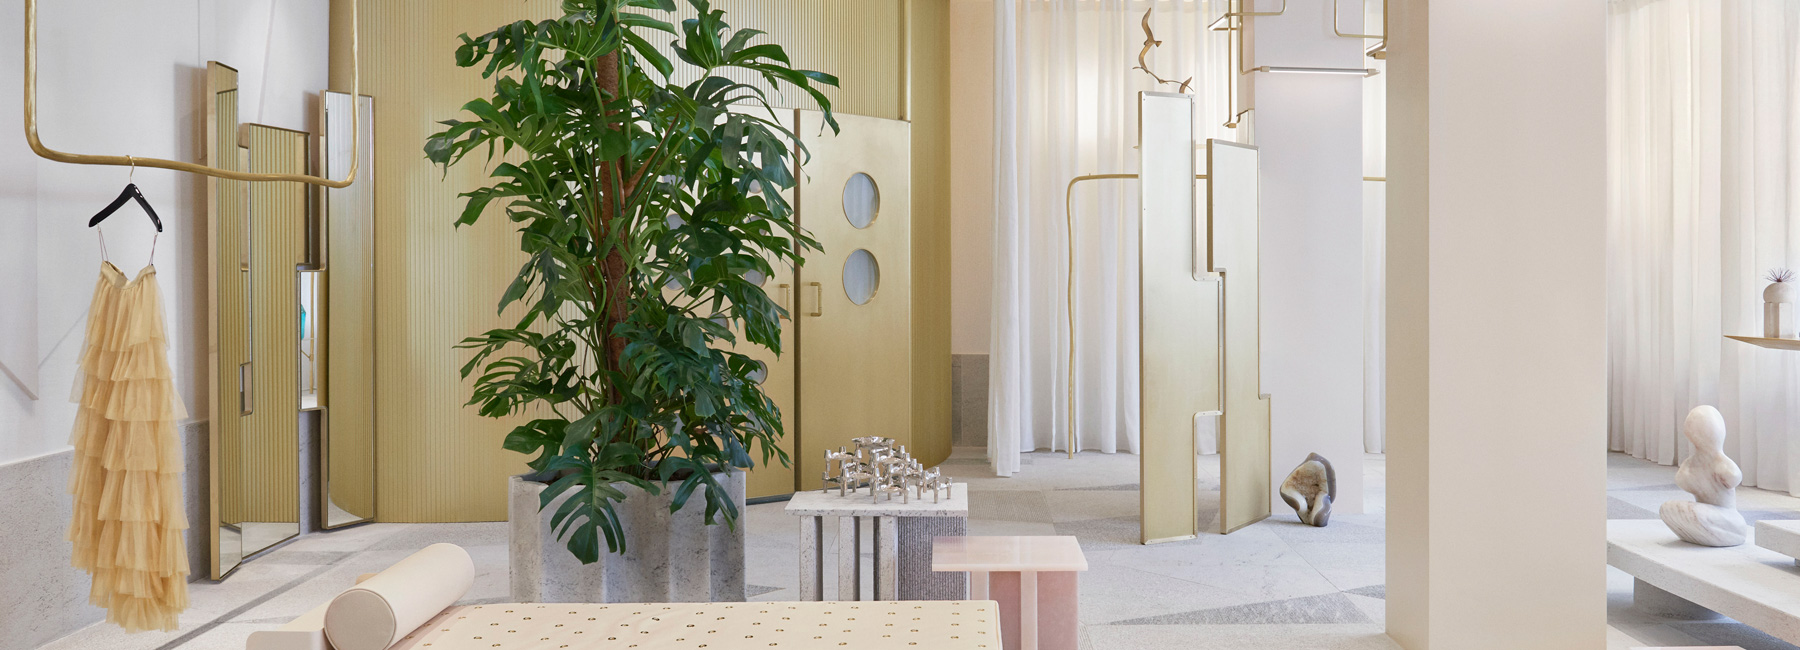 Boutique Design Paris Pink Onyx Granite And Brass Take Center Stage At The Forte Forte